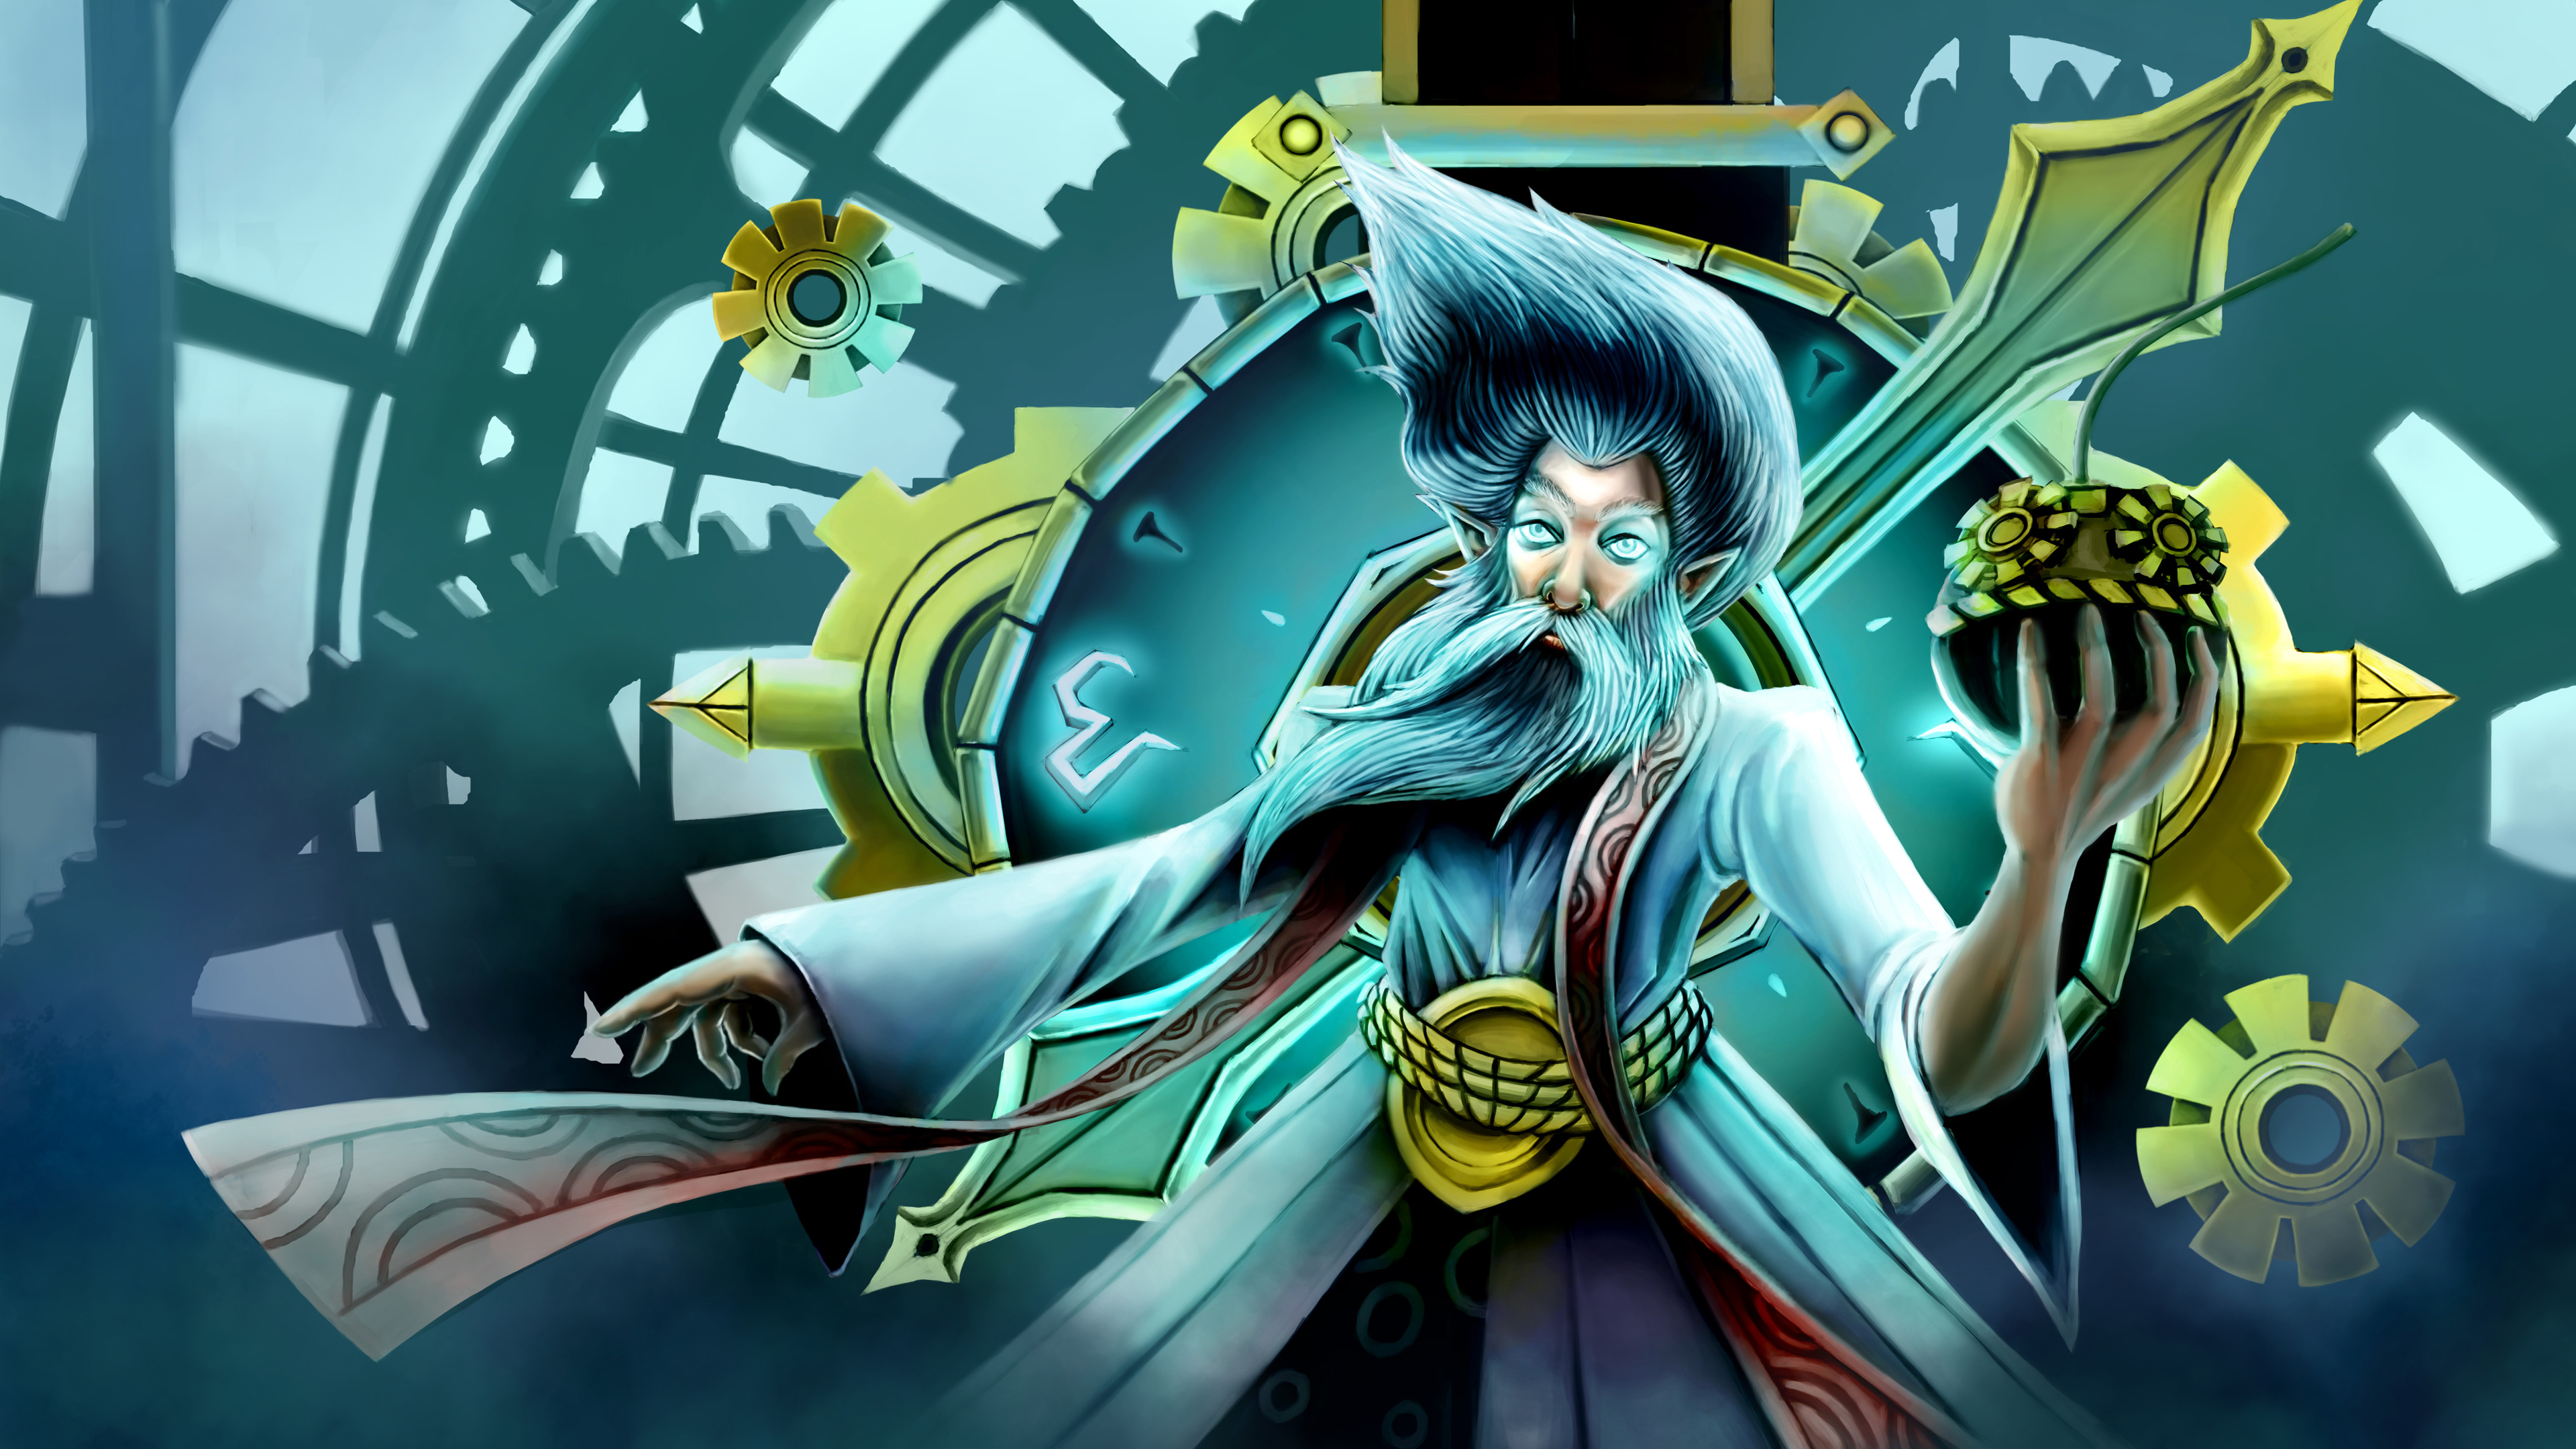 Tattoo Anime Girl Wallpaper Video Game League Of Legends Zilean The Chronokeeper Mage